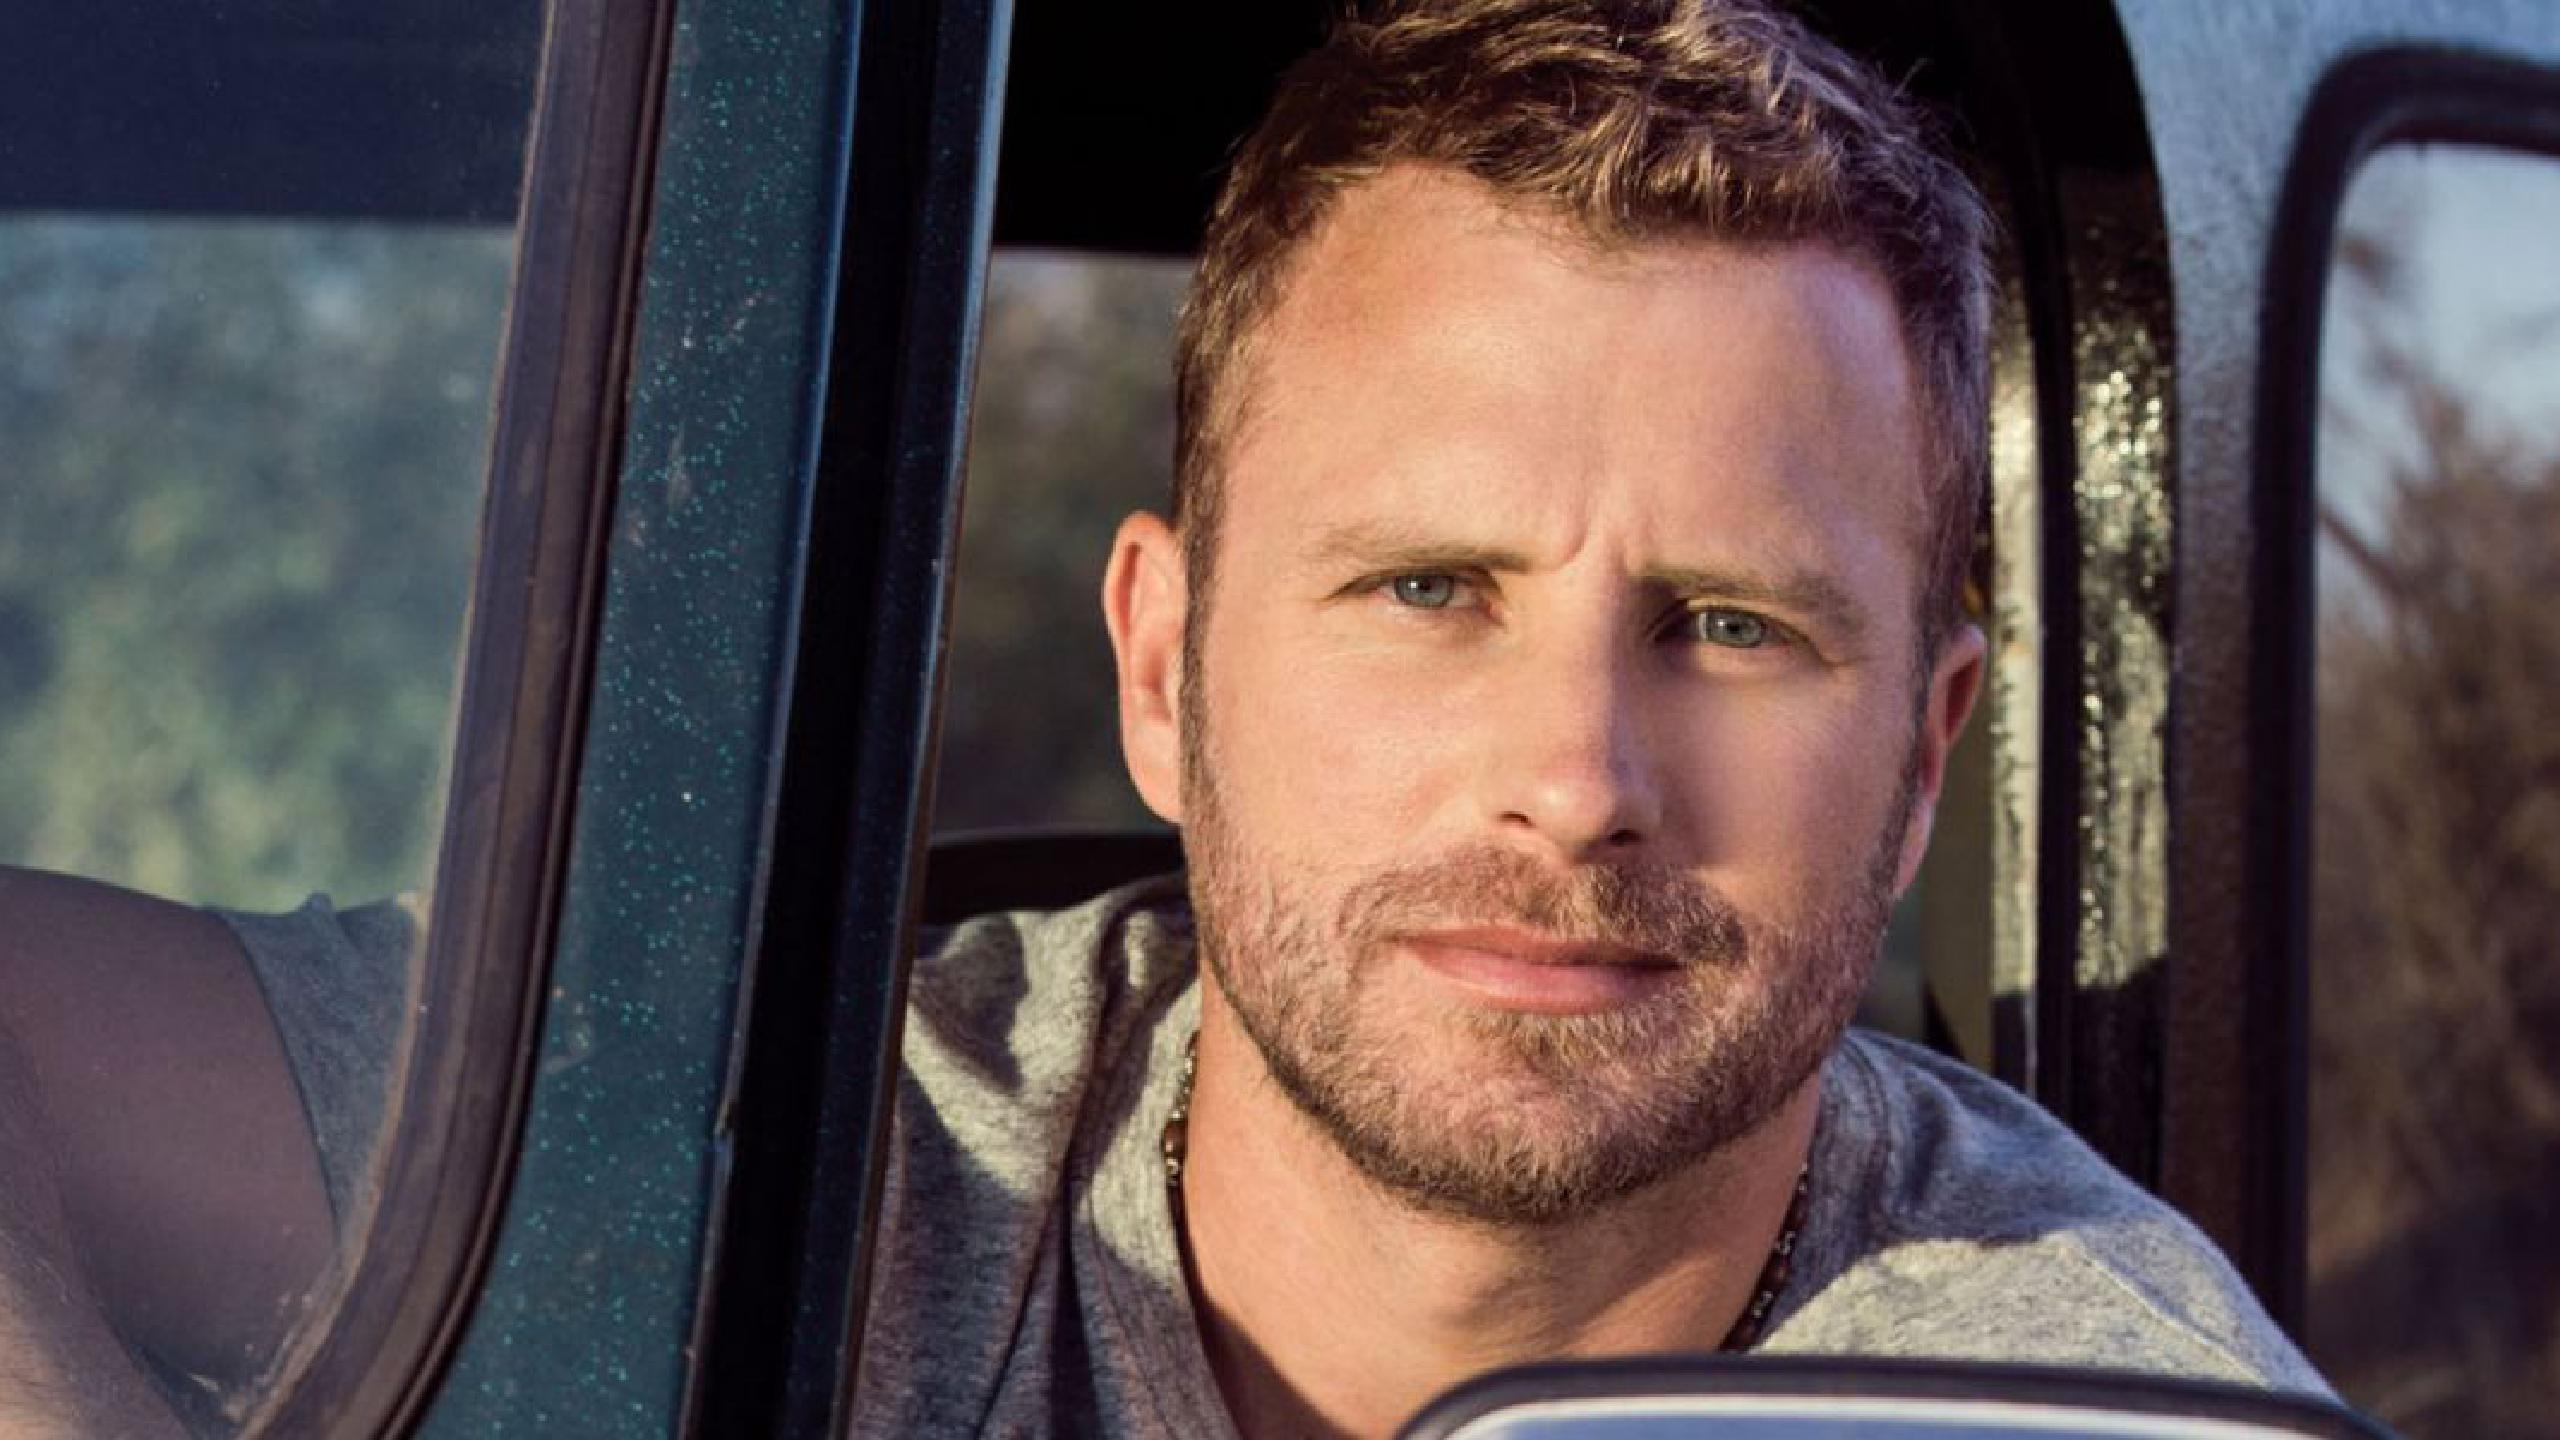 Dierks Bentley Tour 2020.Dierks Bentley Tour Dates 2019 2020 Dierks Bentley Tickets